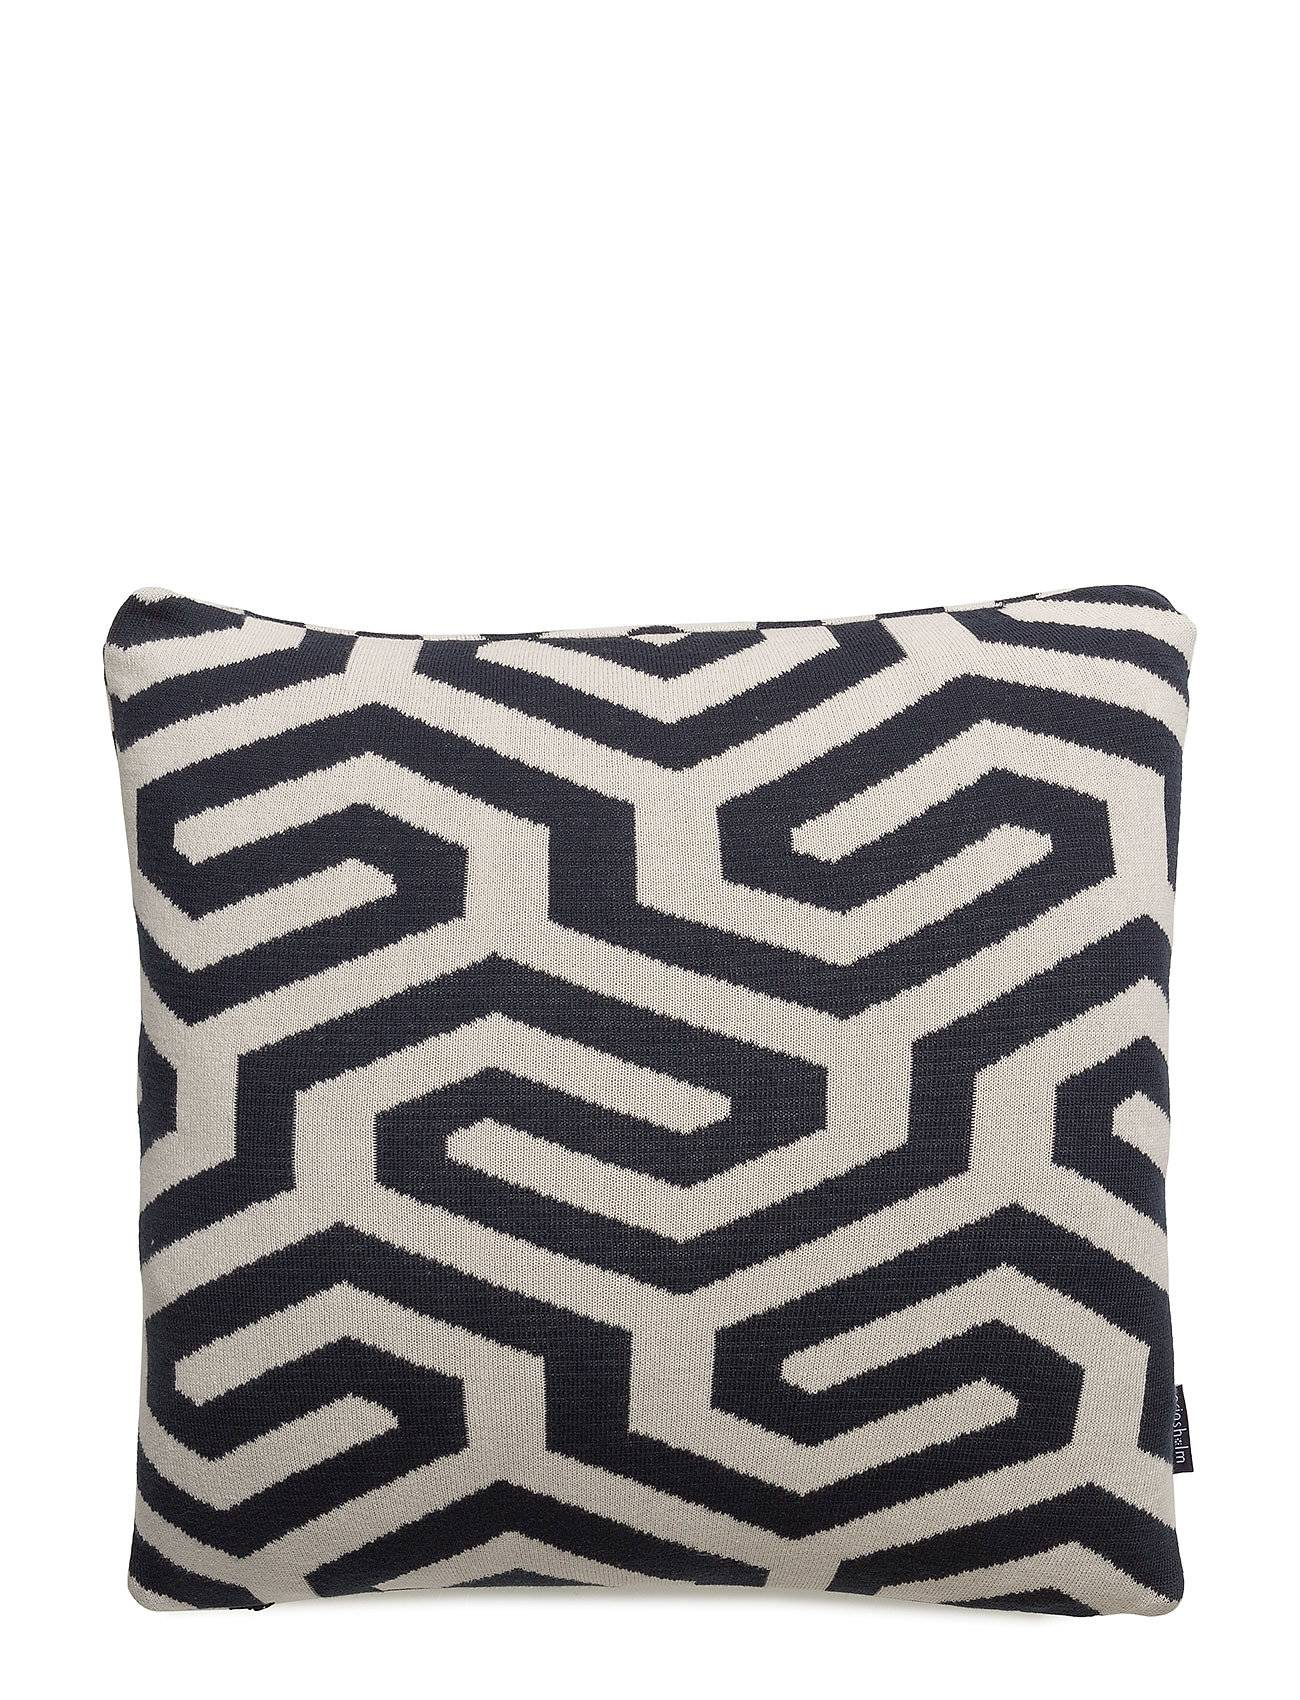 Gripsholm Cushion Cover Alicia